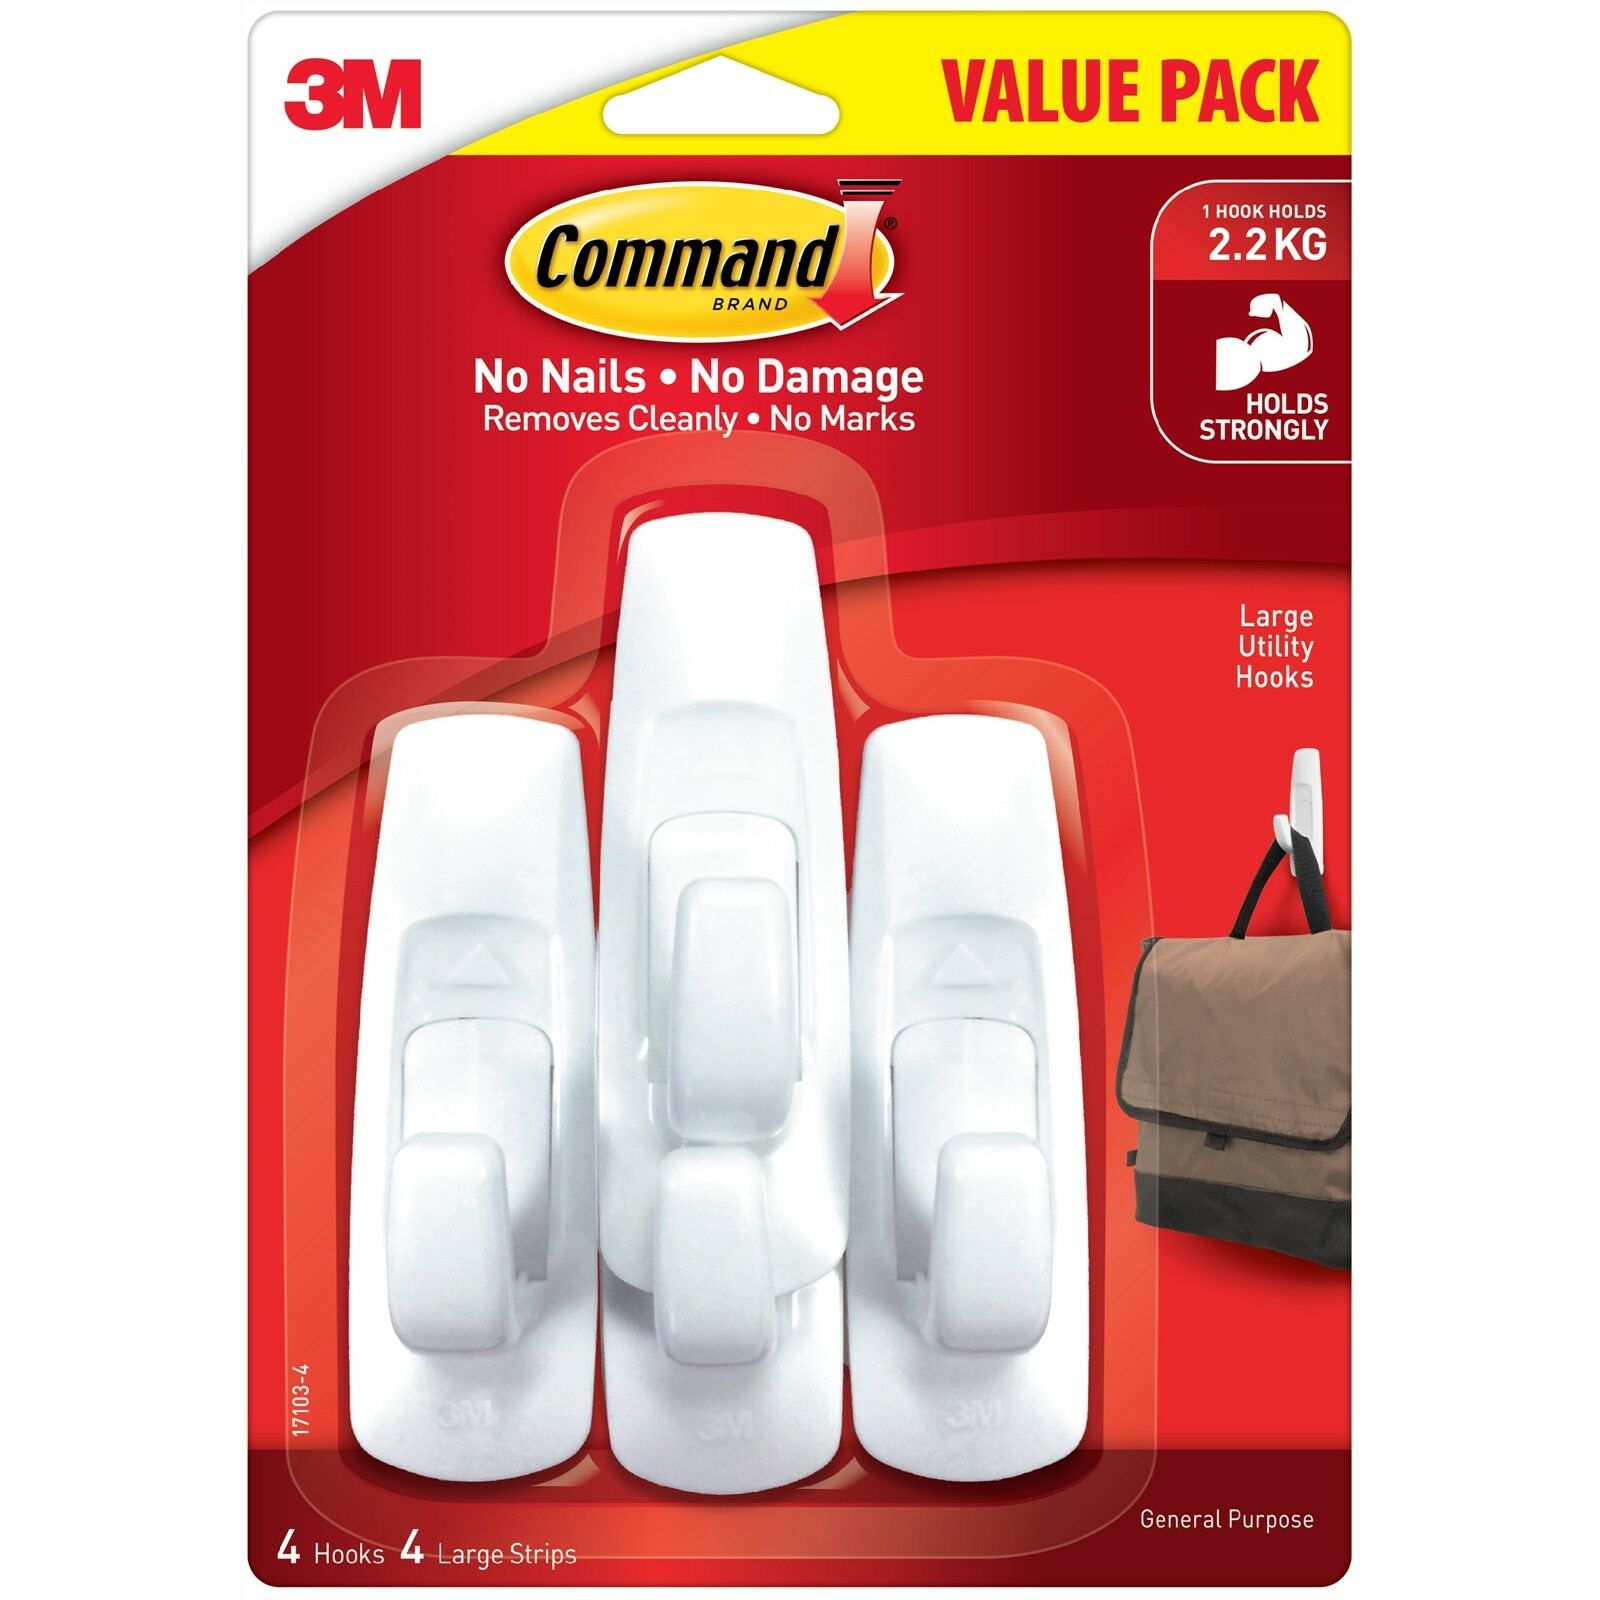 Command LARGE UTILITY HOOKS 4Pcs Hold Up To 2.2Kg,Remove Cleanly WHITEUSA Brand